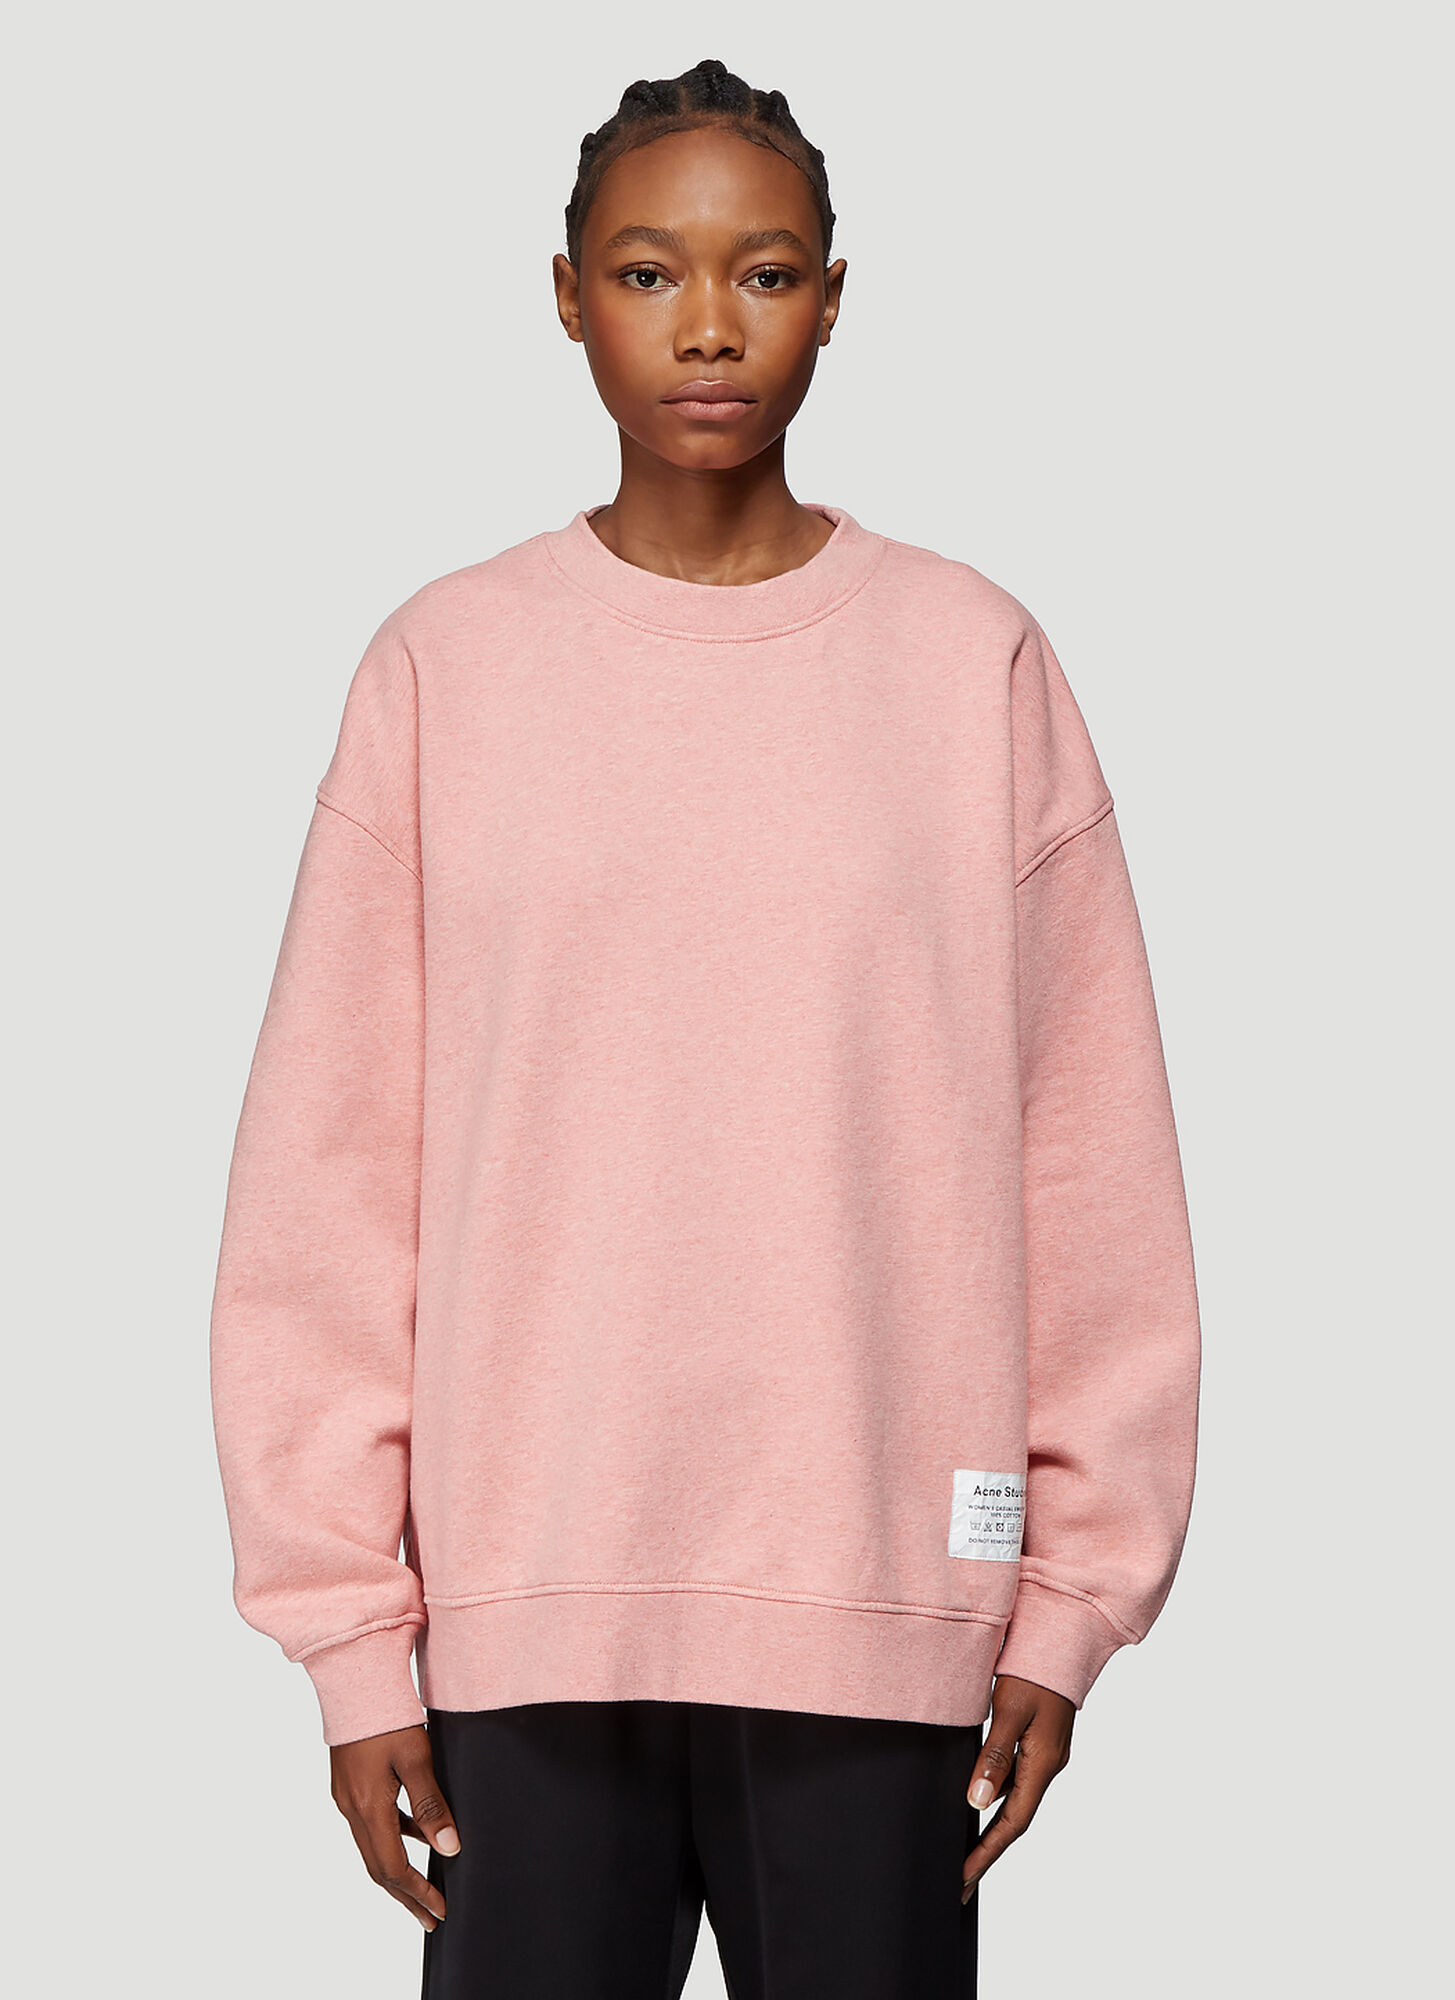 Acne Studios Wash Label Sweatshirt in Pink